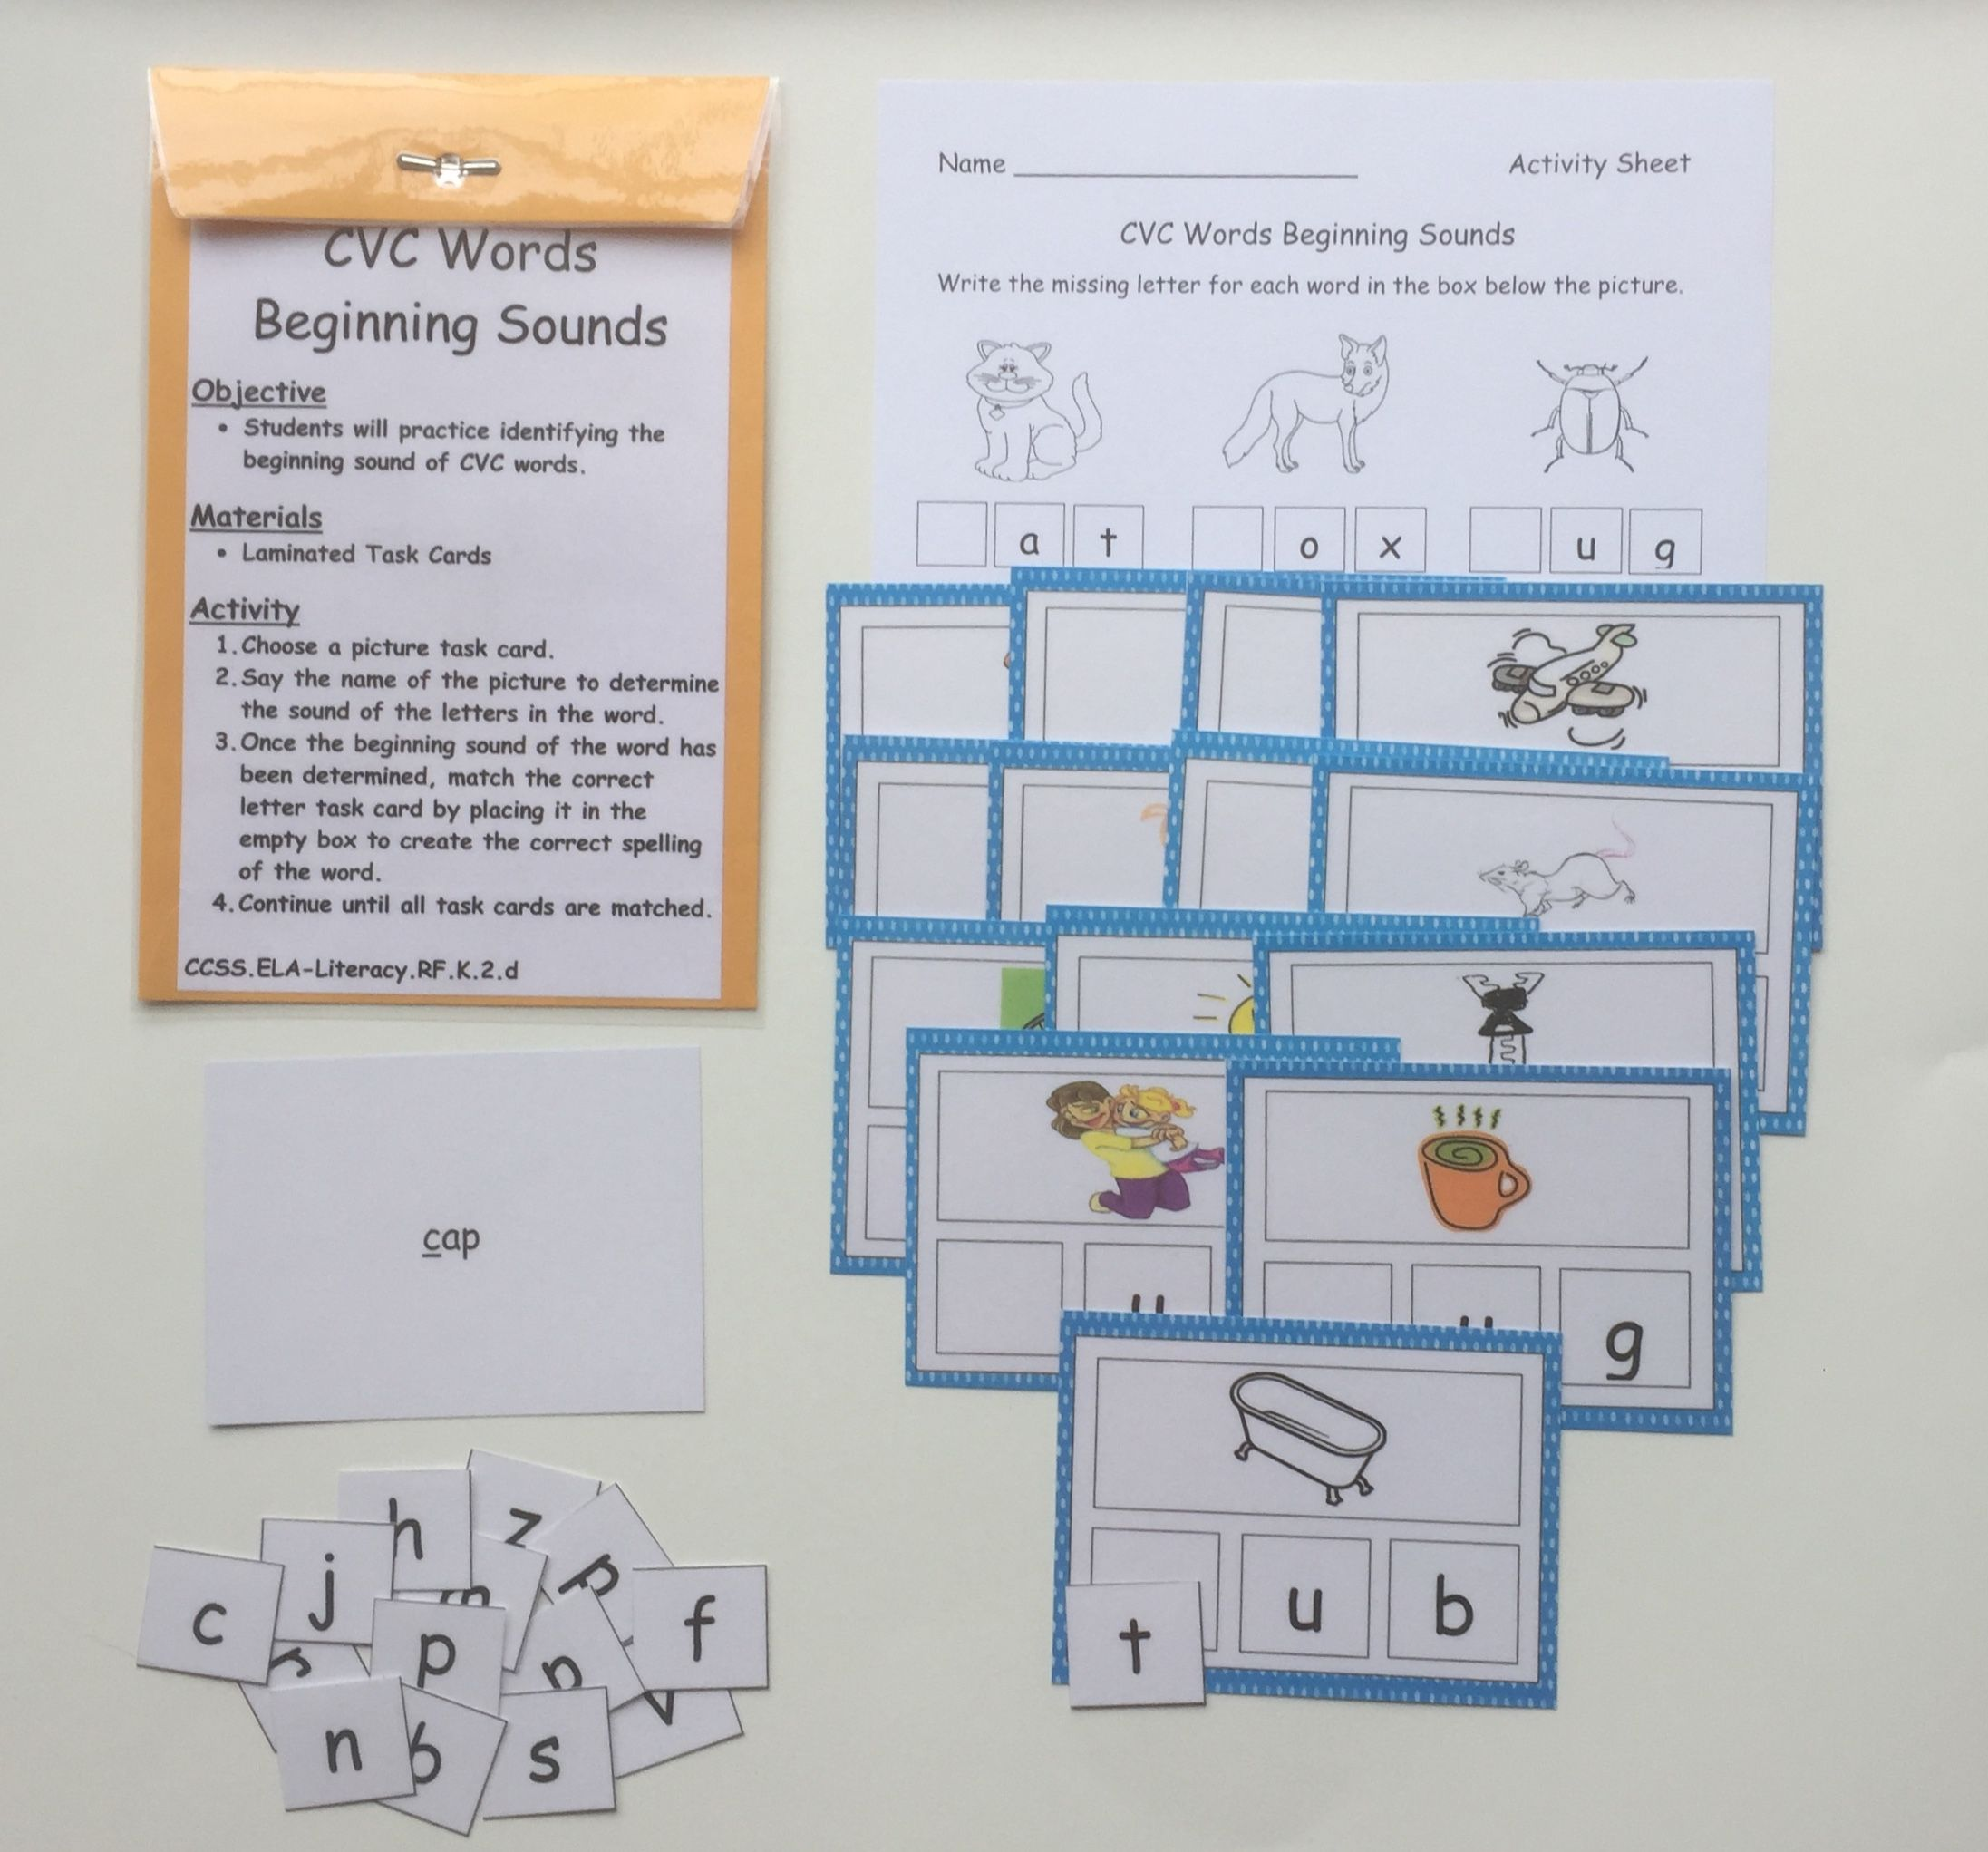 Cvc Words Beginning Sounds Laminated And Ready For